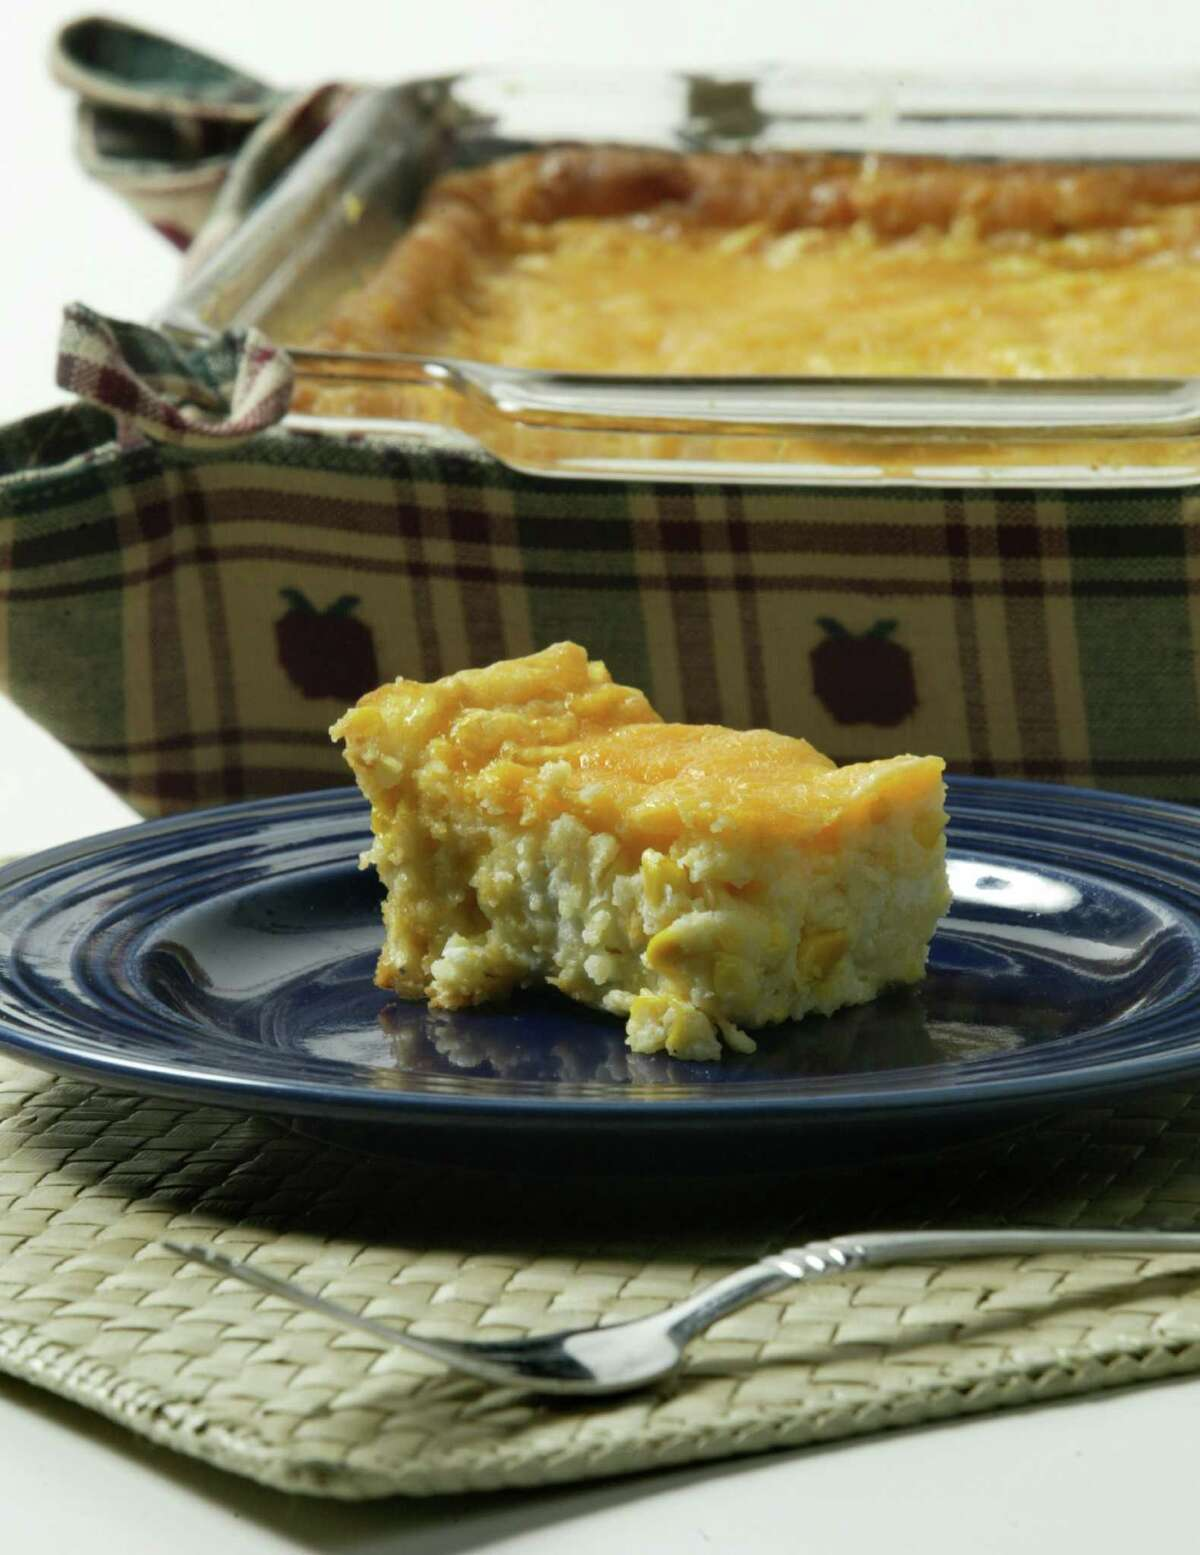 Corn Casserole photographed for Houston Chronicle Our Favorite Recipe feature. Shot Thursday afternoon October 9, 2003. -- (photograph by D. Fahleson, Houston Chronicle Staff Photojournalist) HOUCHRON CAPTION (11/05/2003): Cream cheese gives body to this baked Corn Casserole.